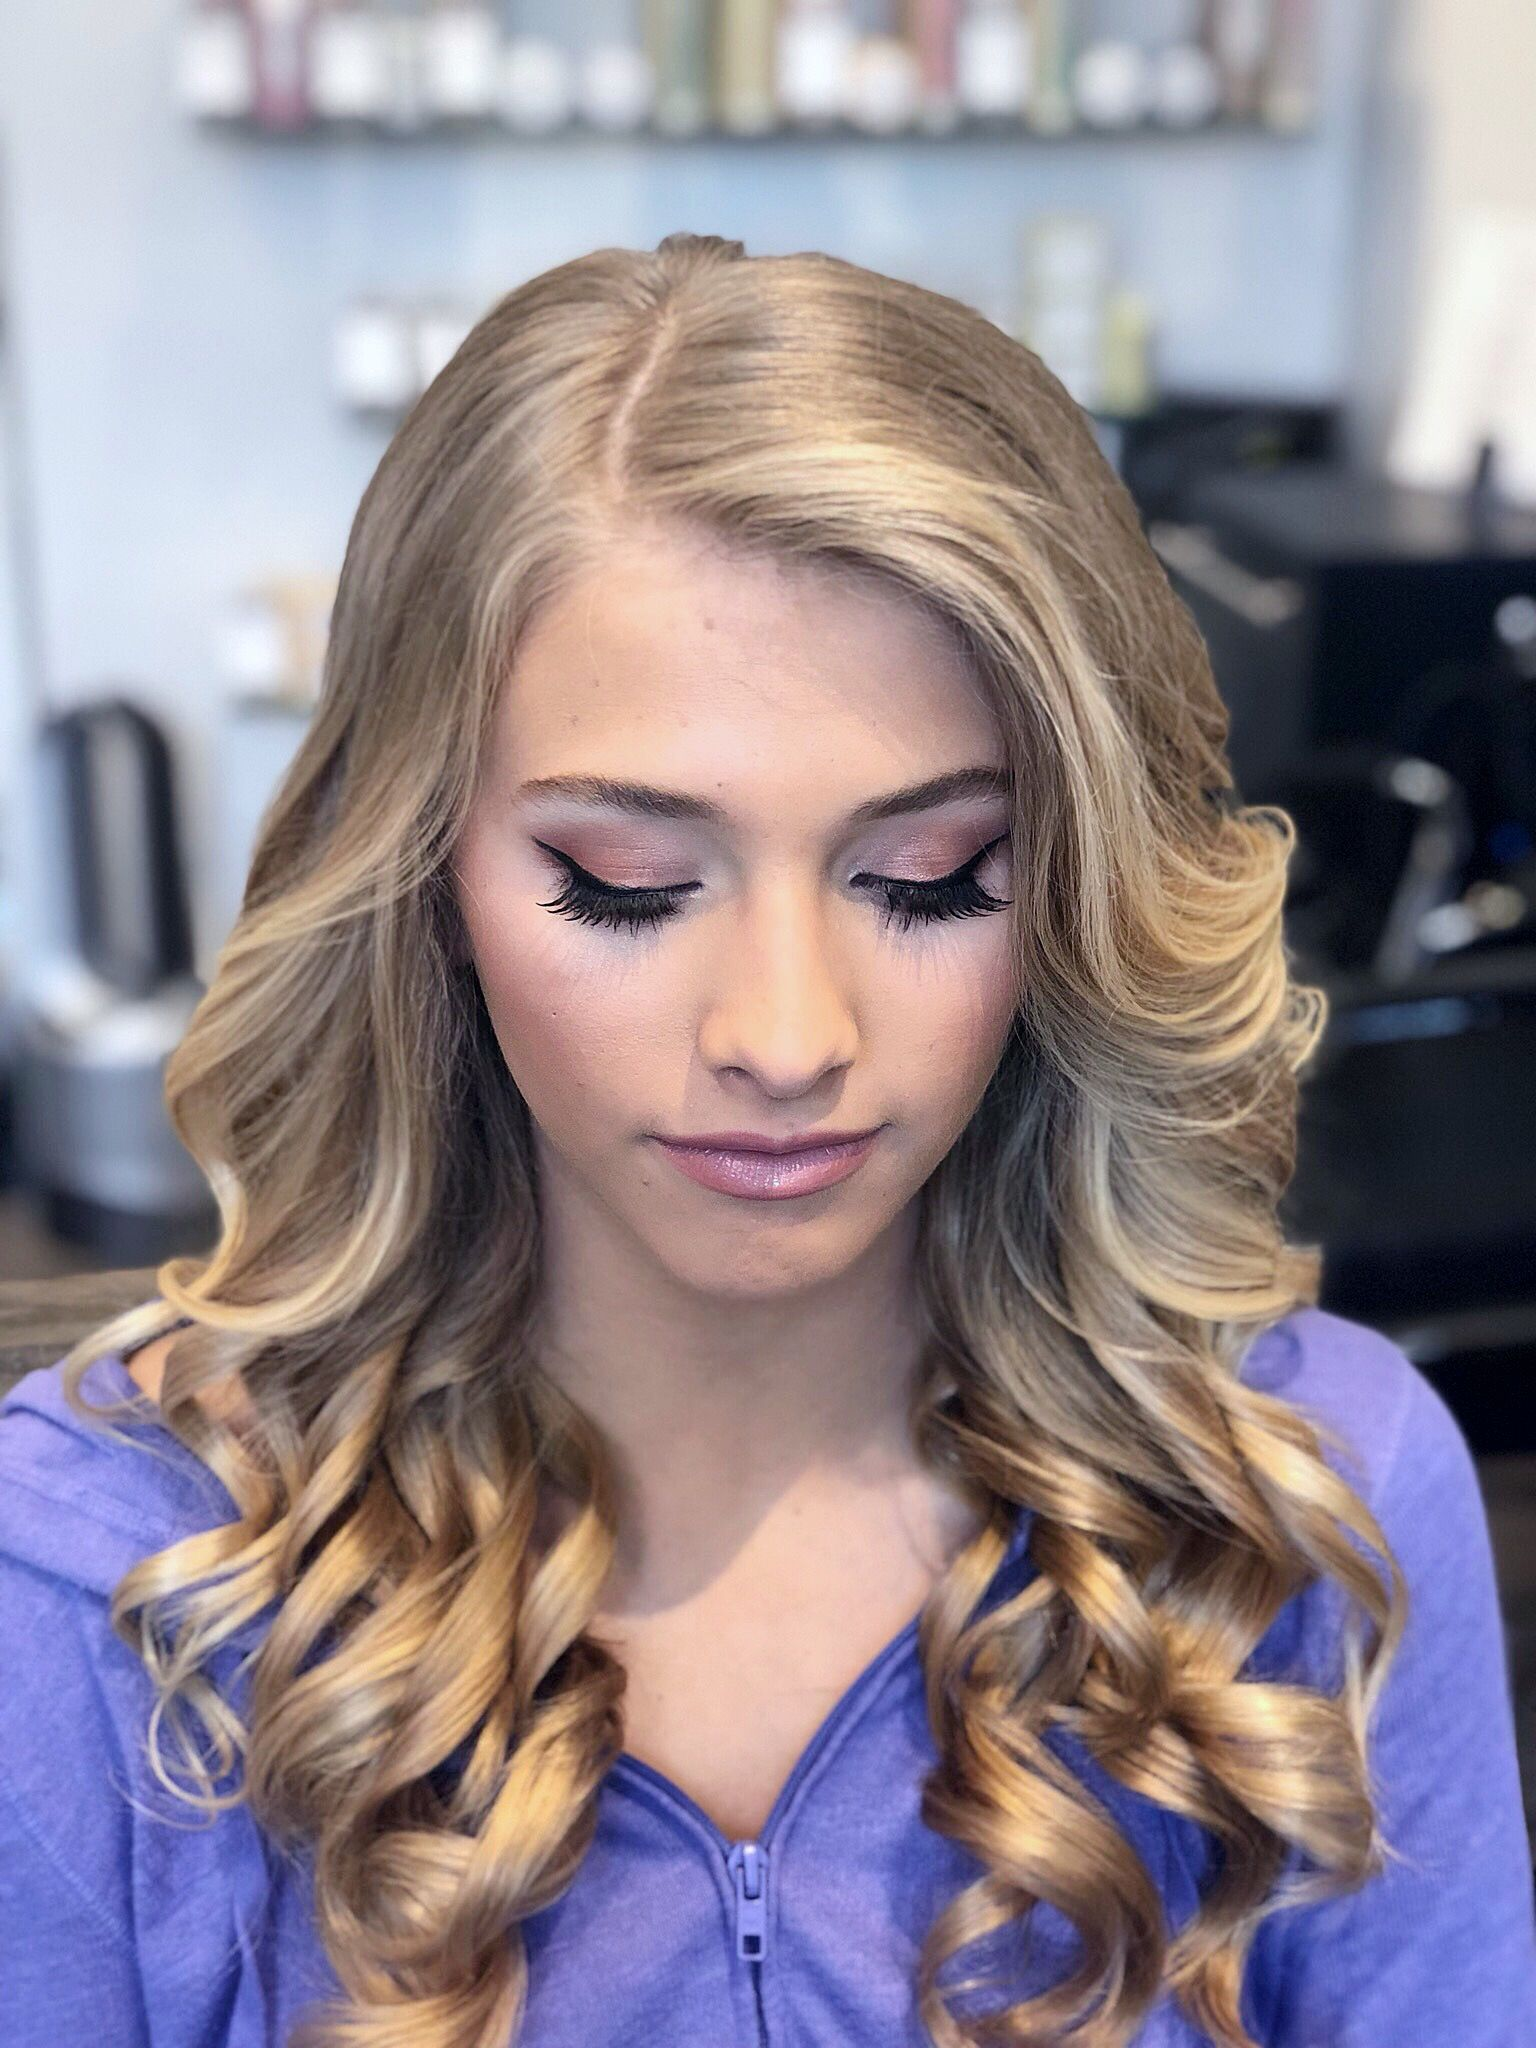 Prom hair and makeup from refinedbeautyboutique